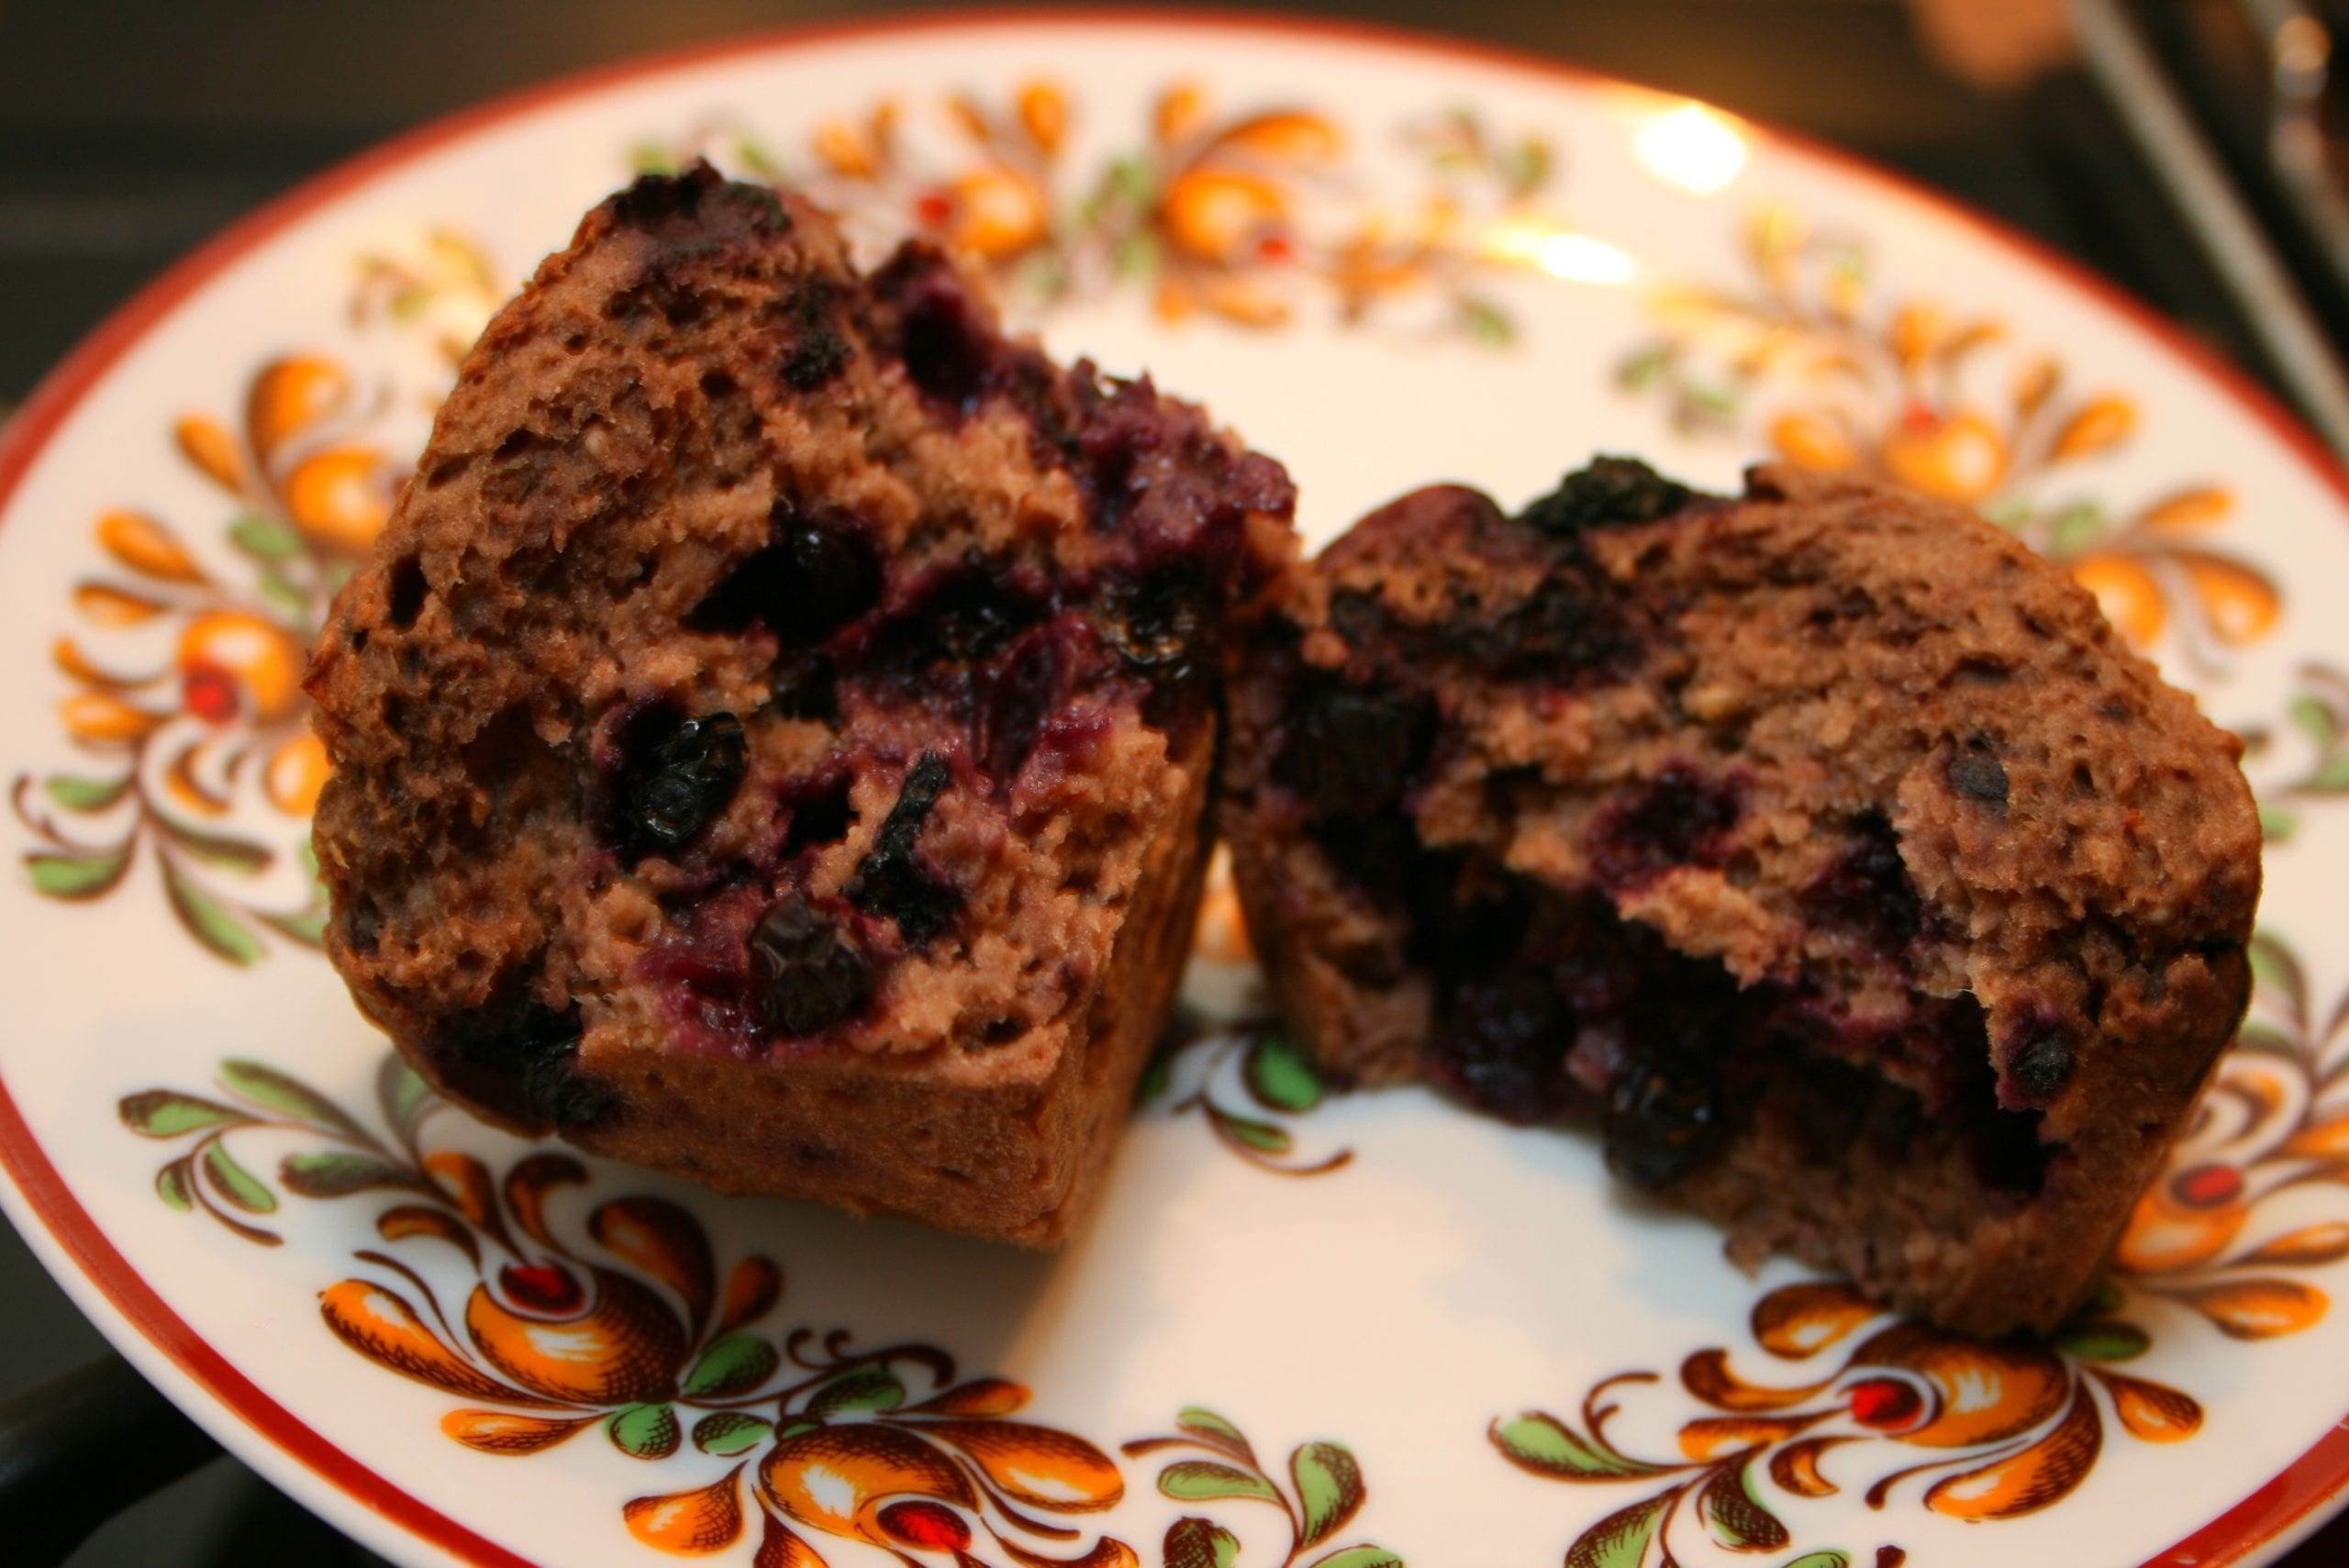 sugar-free, oil-free blueberry muffins